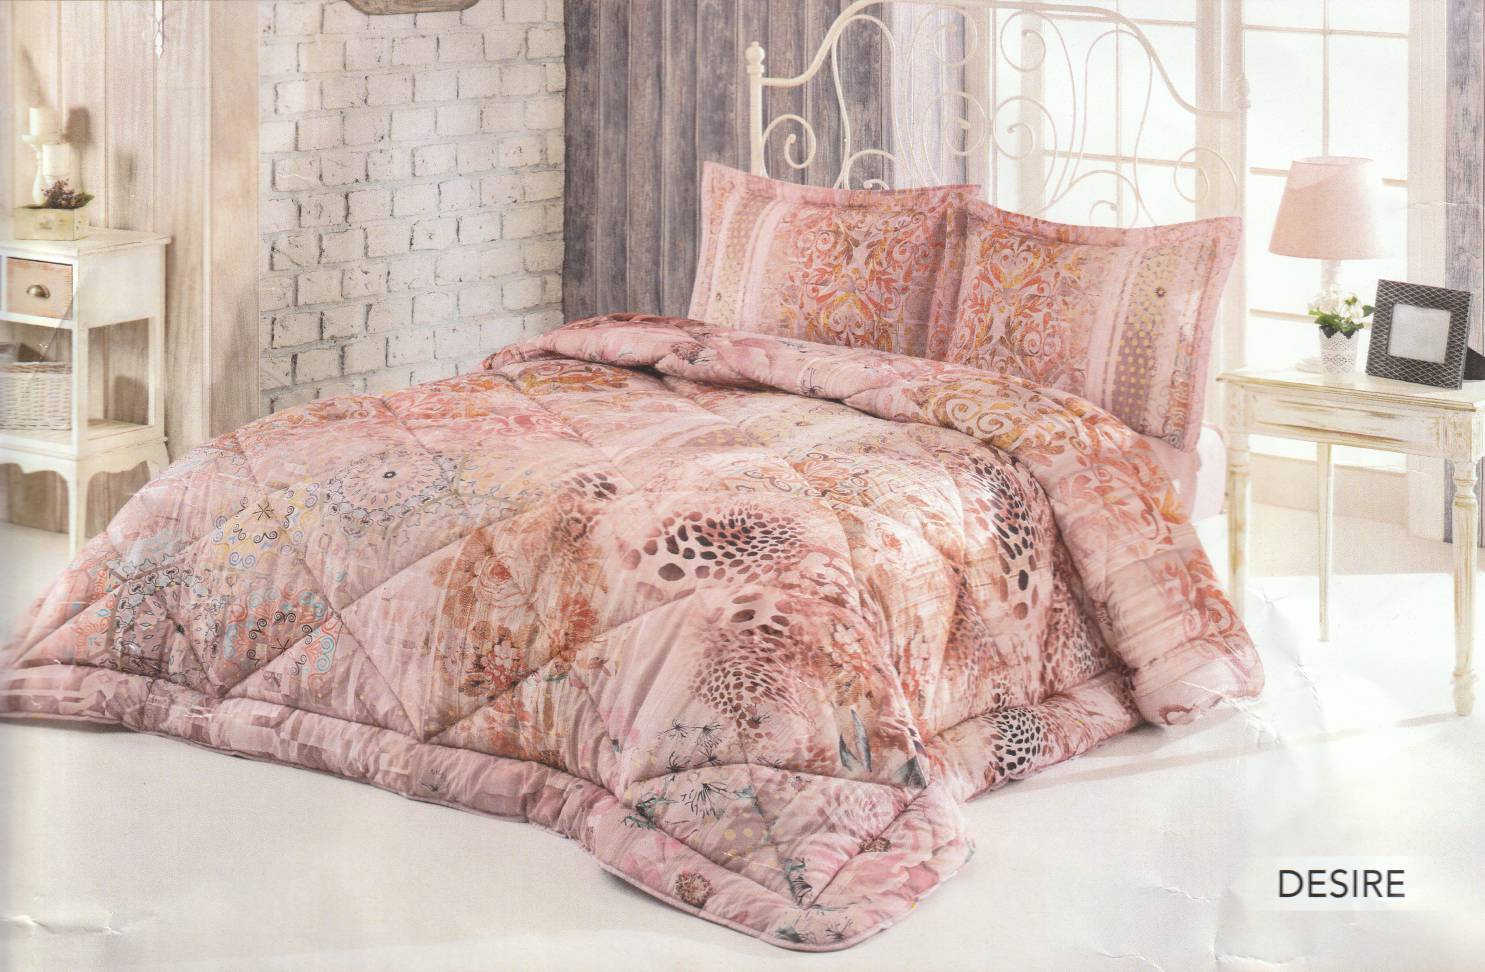 Couette Cotton Doux 2 Places DESIRE 240x260